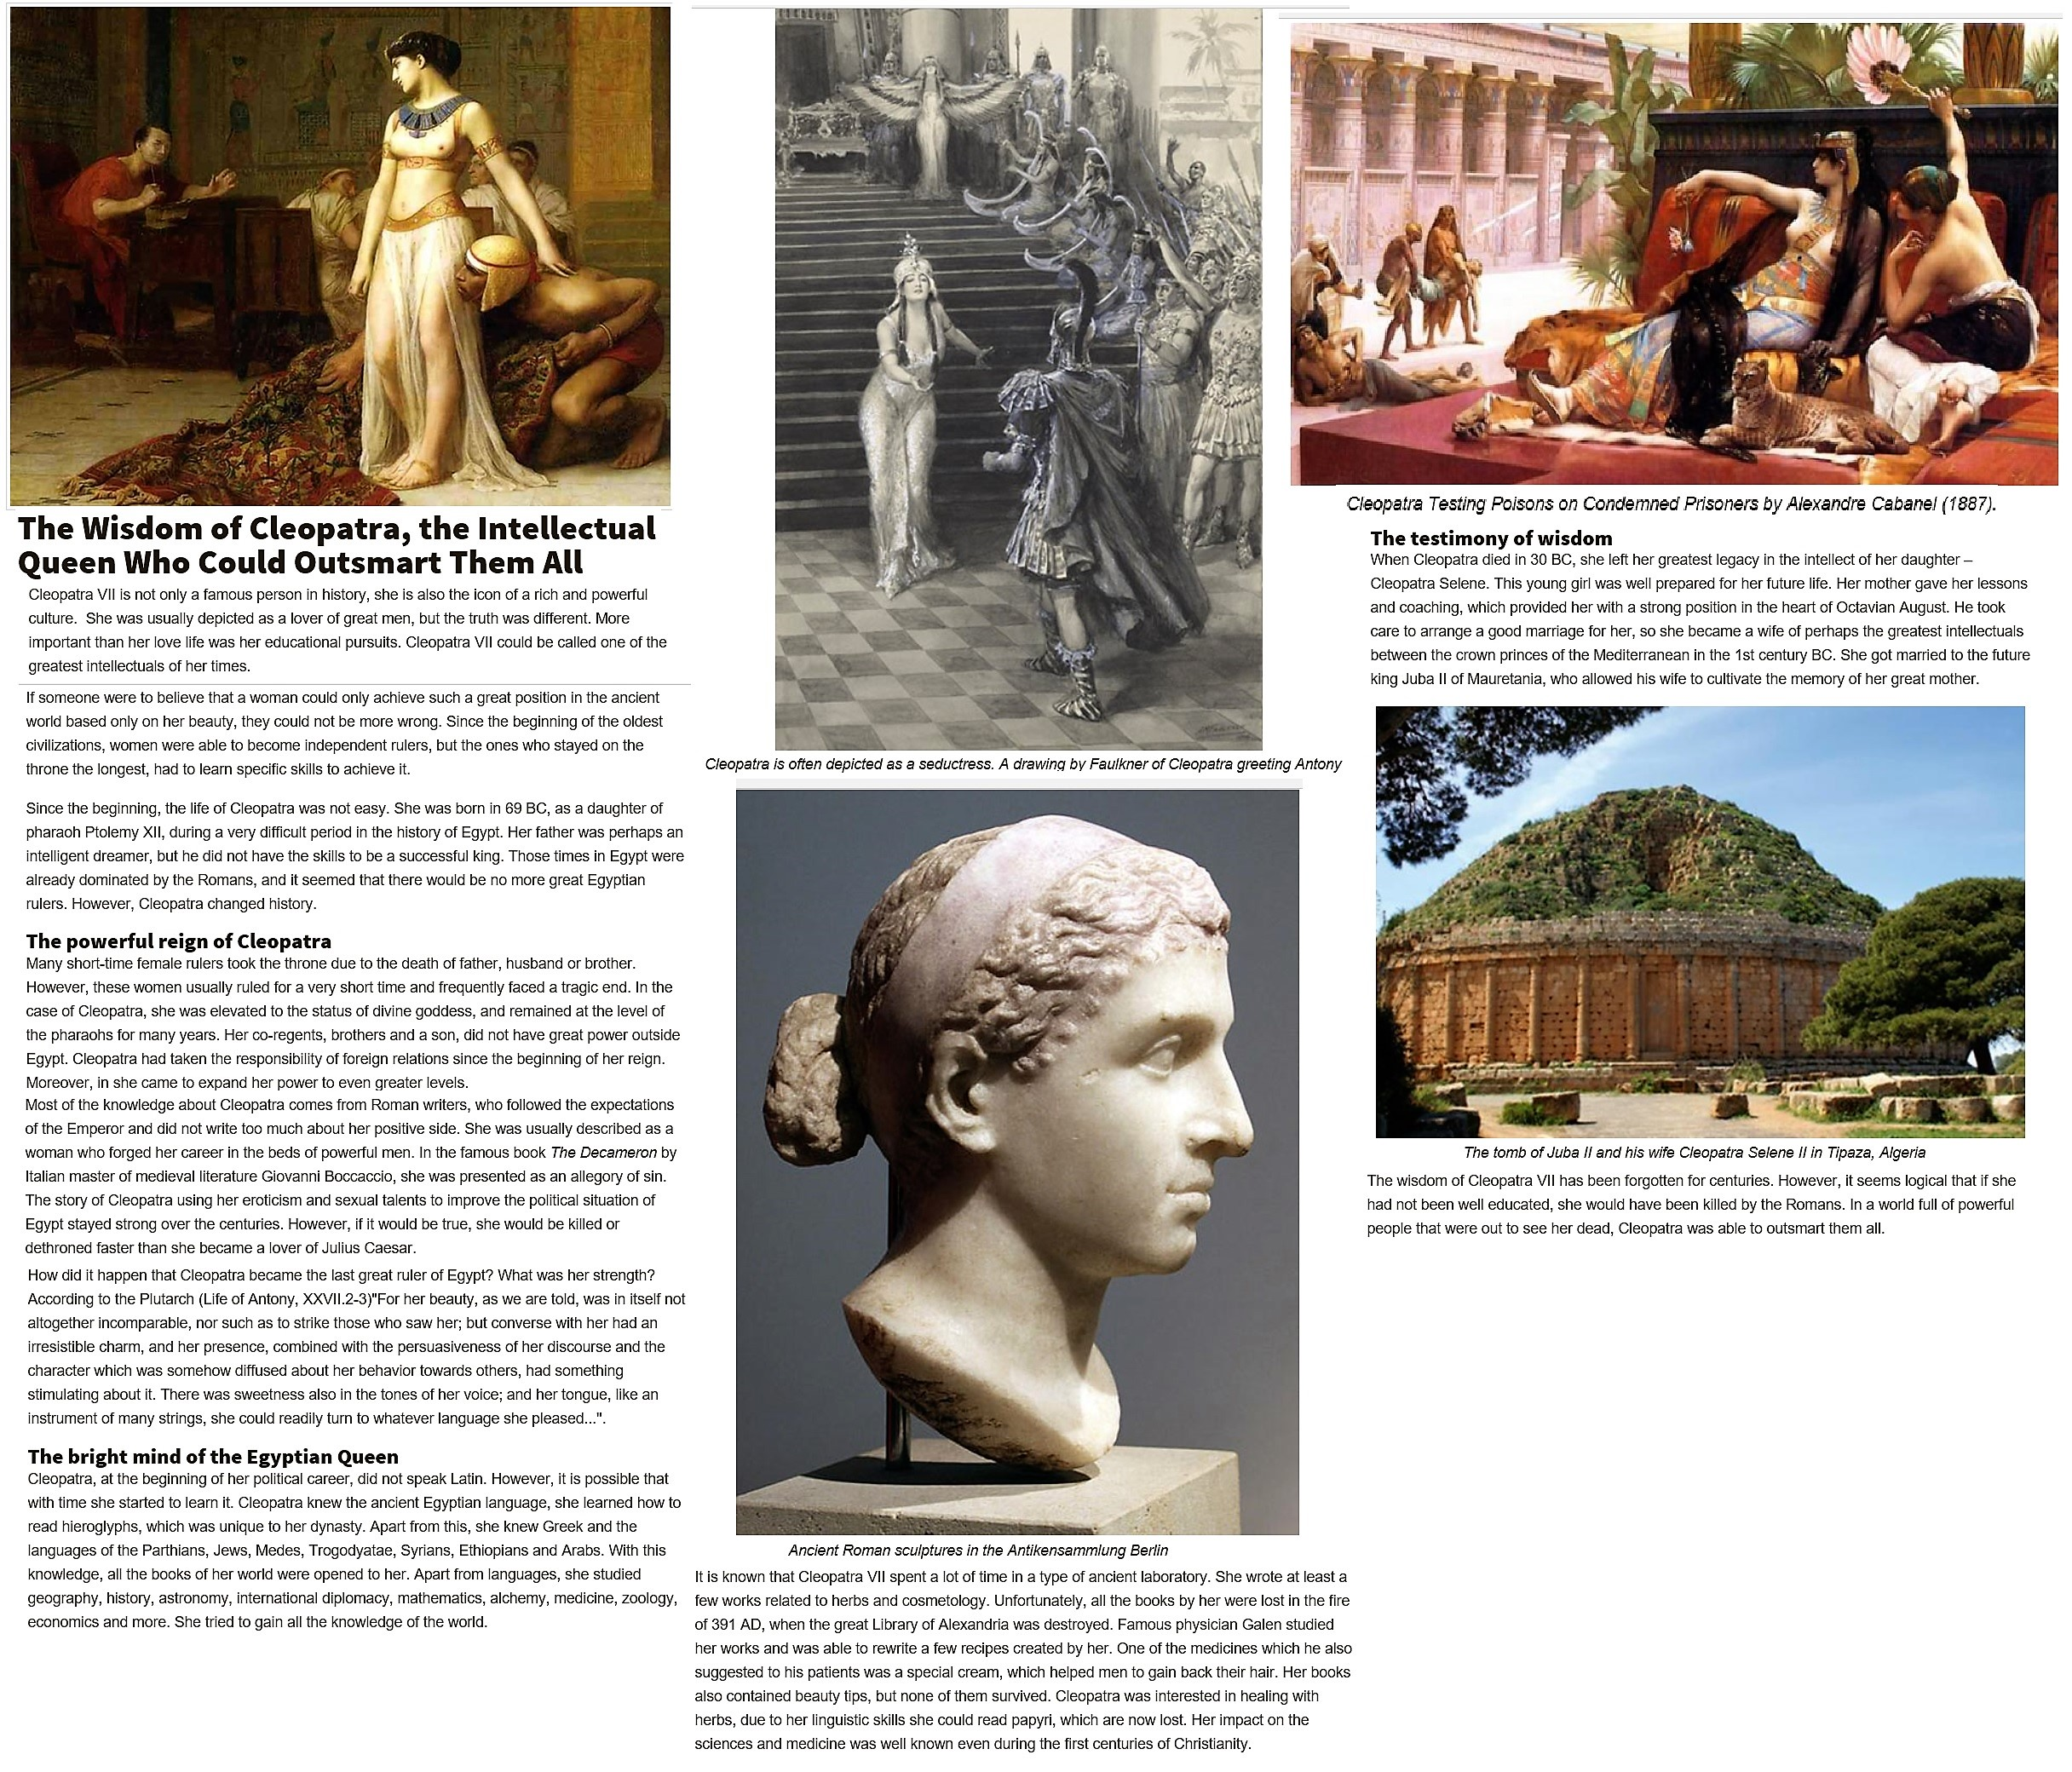 historical personalities and issues cleopatra